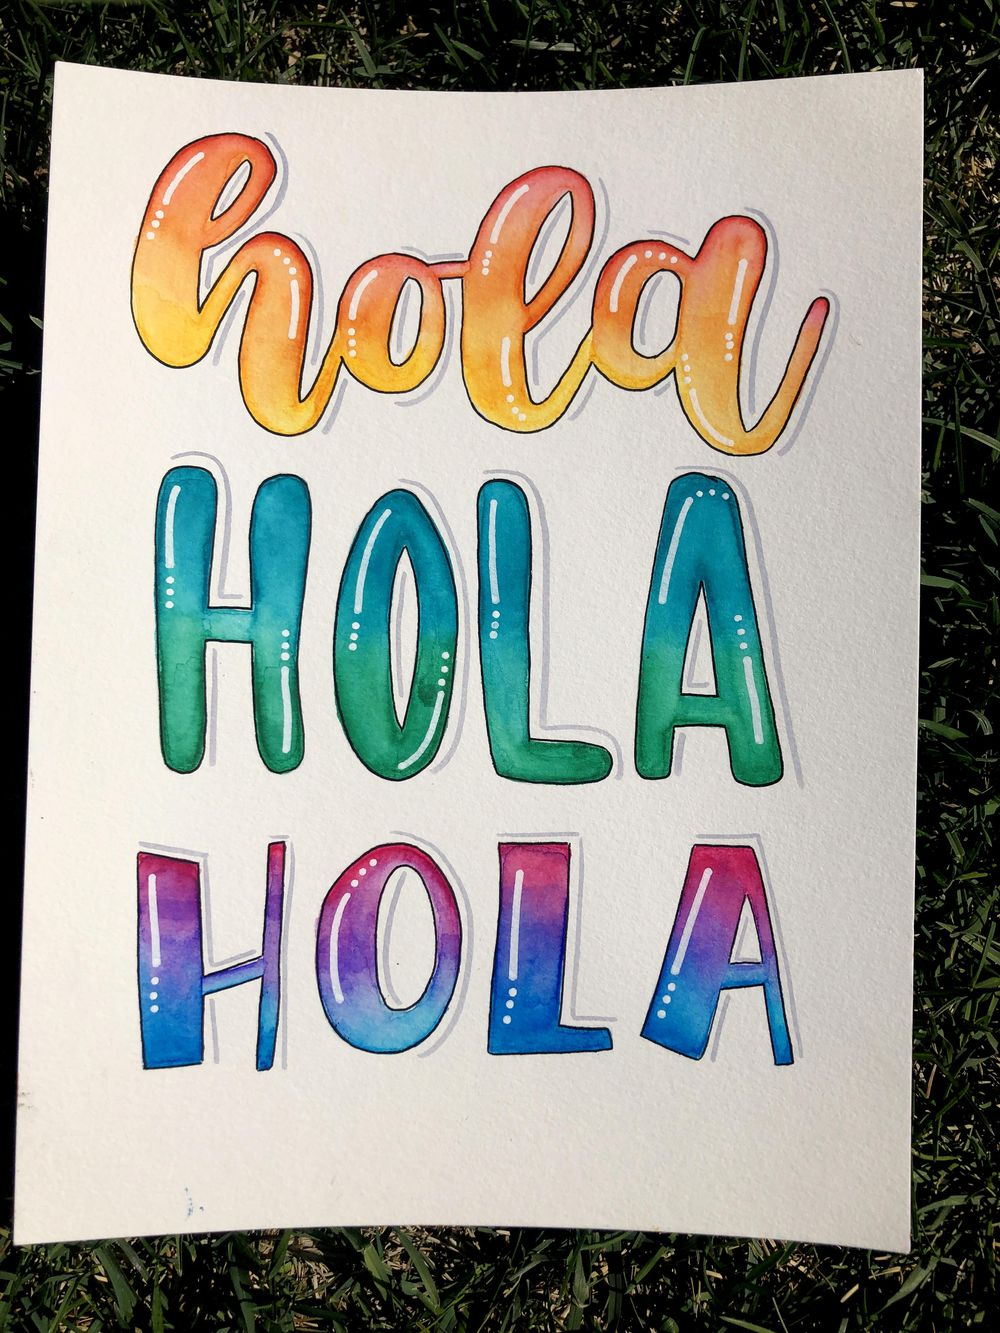 Hola - image 1 - student project